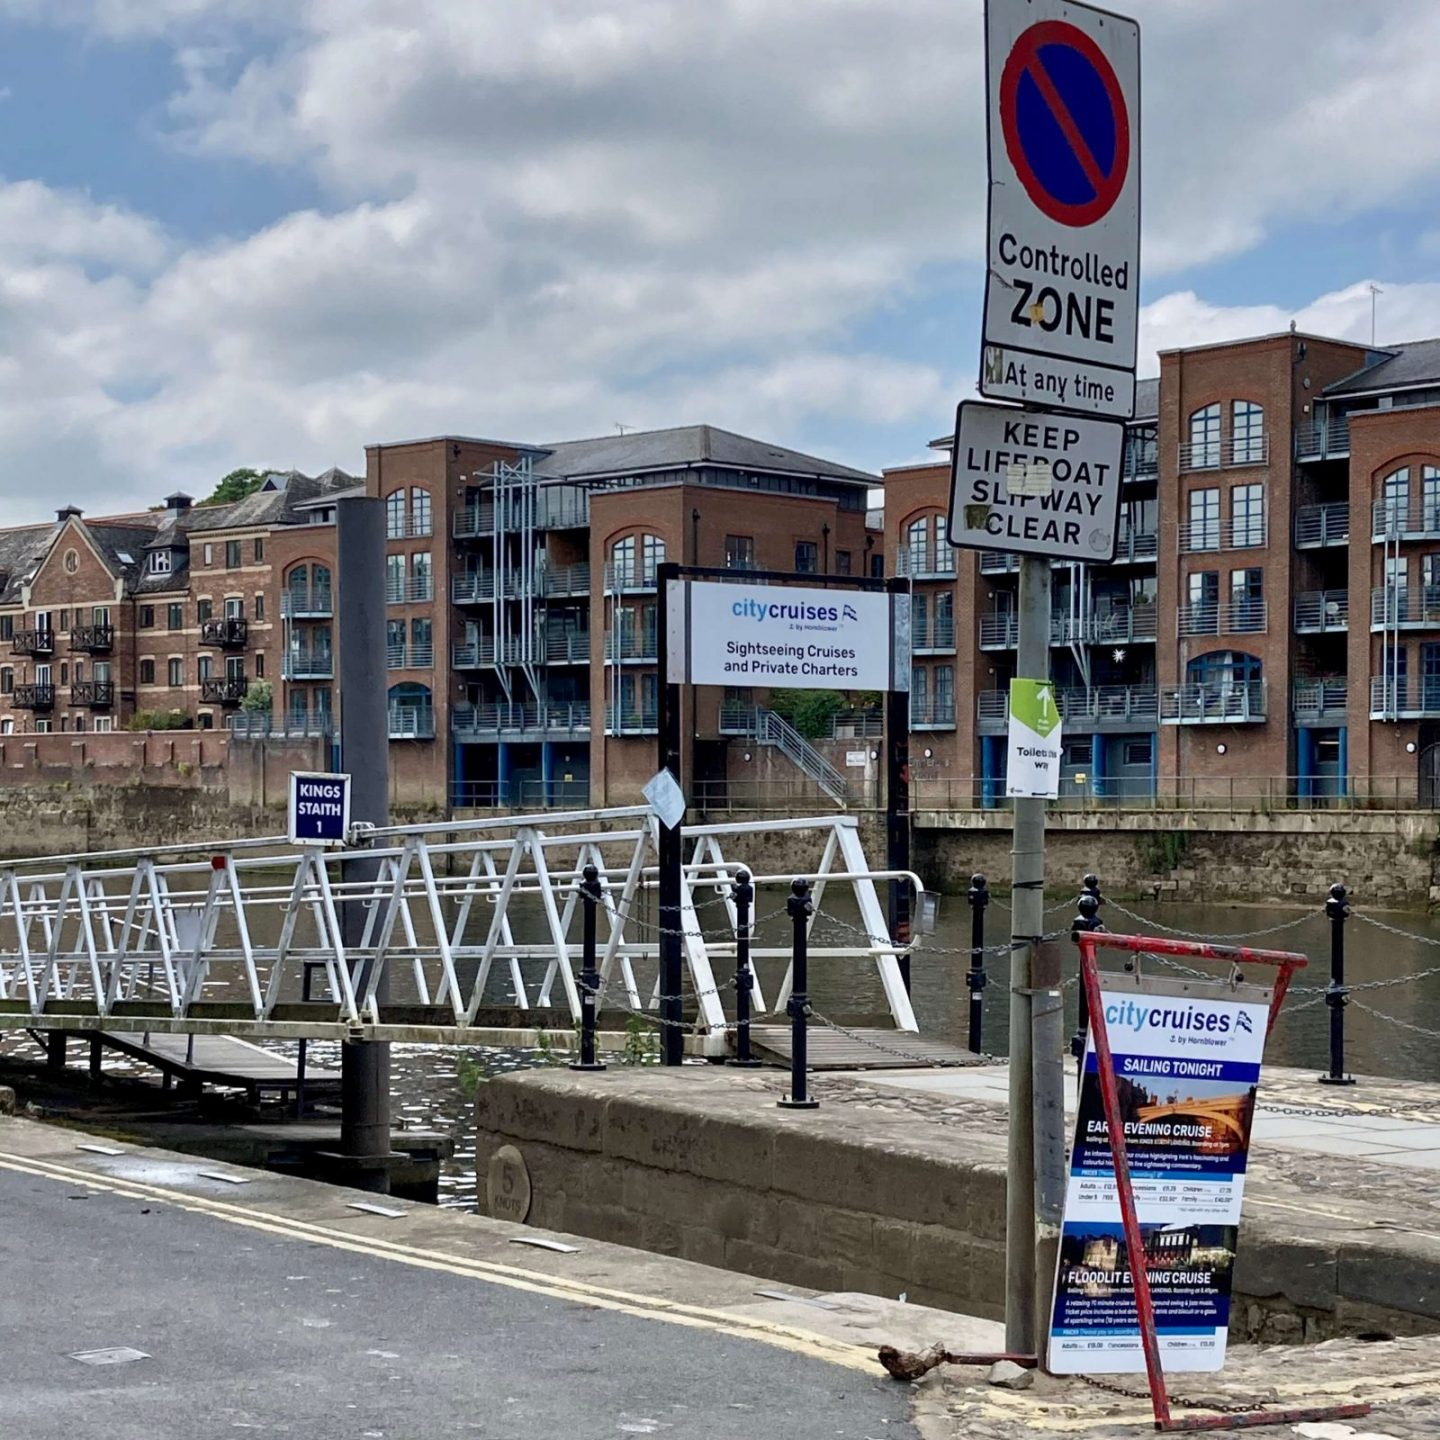 outdoor shot of king's staith landing boarding bridge, showing a long ramp from the pavement to the dock, slightly raised with white railings on both sides. city cruises banner visible in foreground